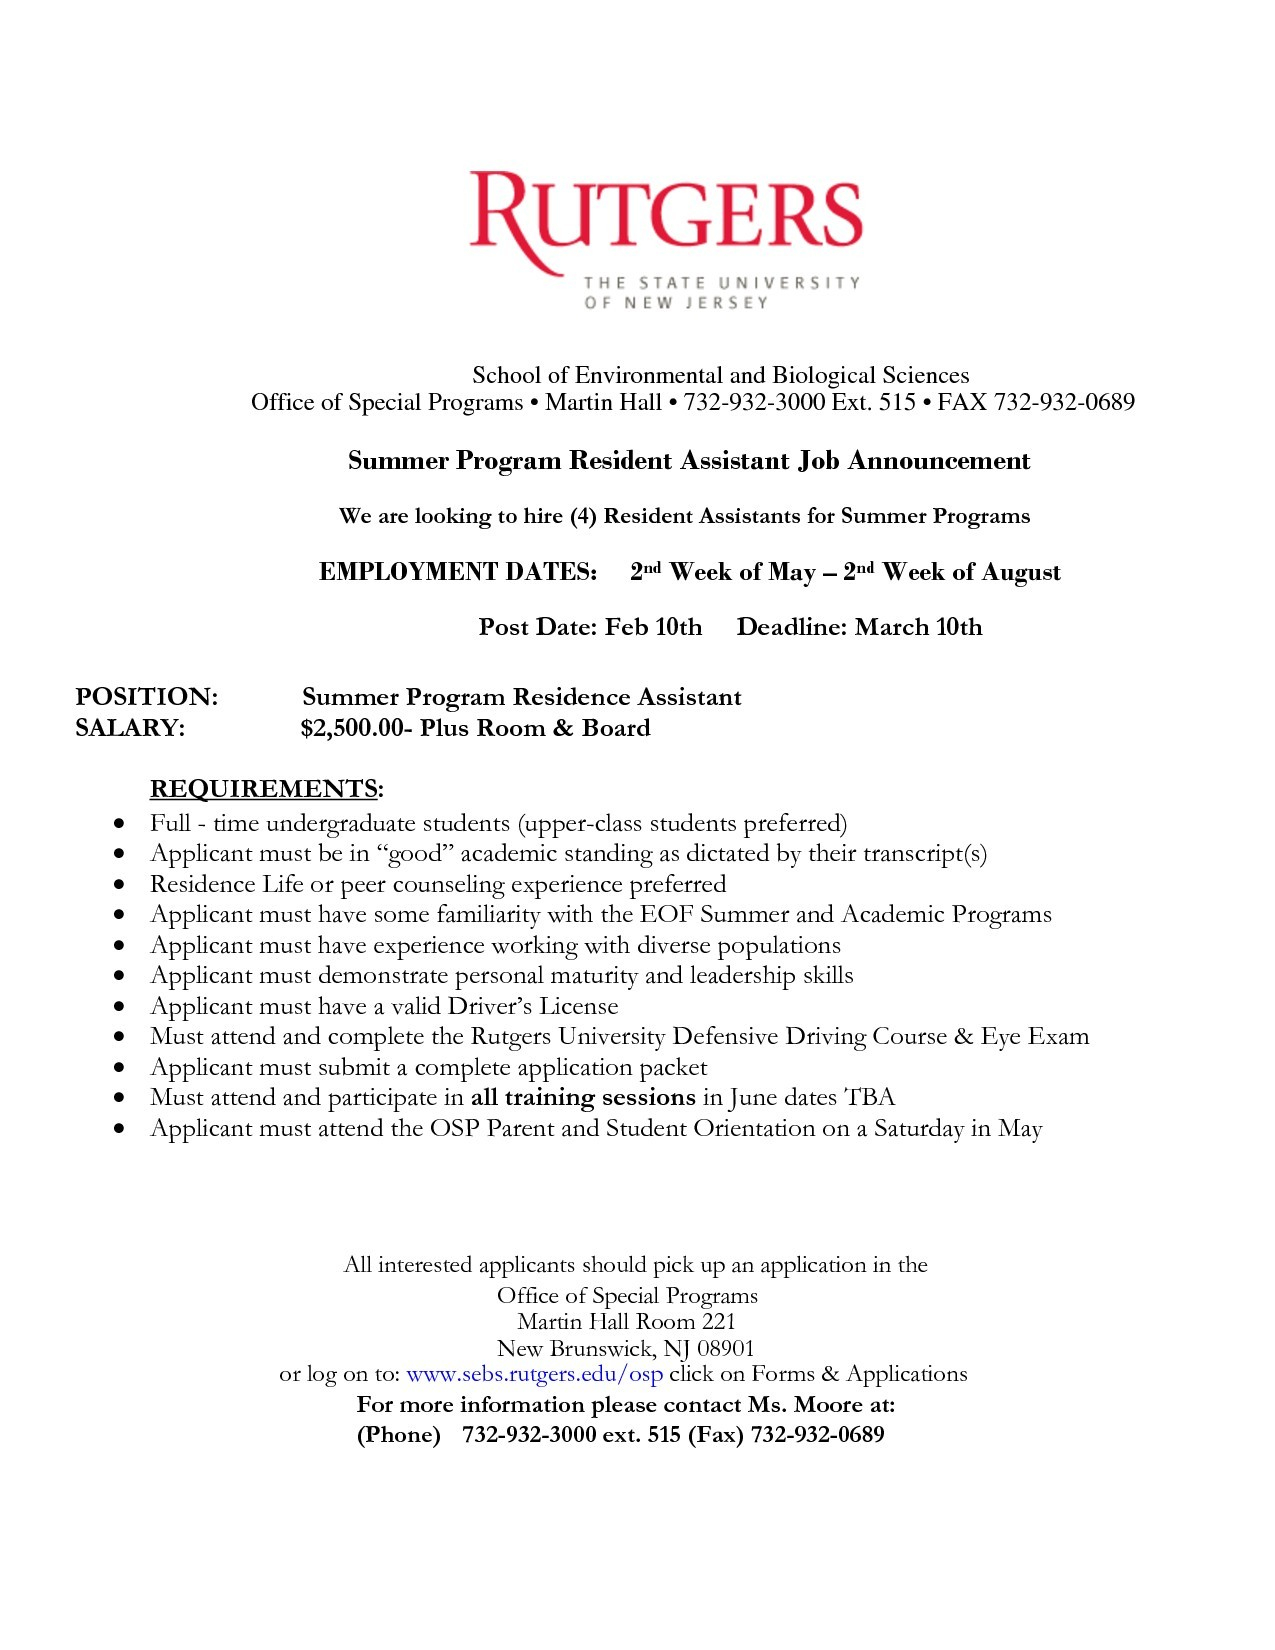 rutgers resume template example-Resume Template Construction Worker Best Elegant Good Nursing Resume Elegant Nurse Resume 0d Wallpapers 42 2-h